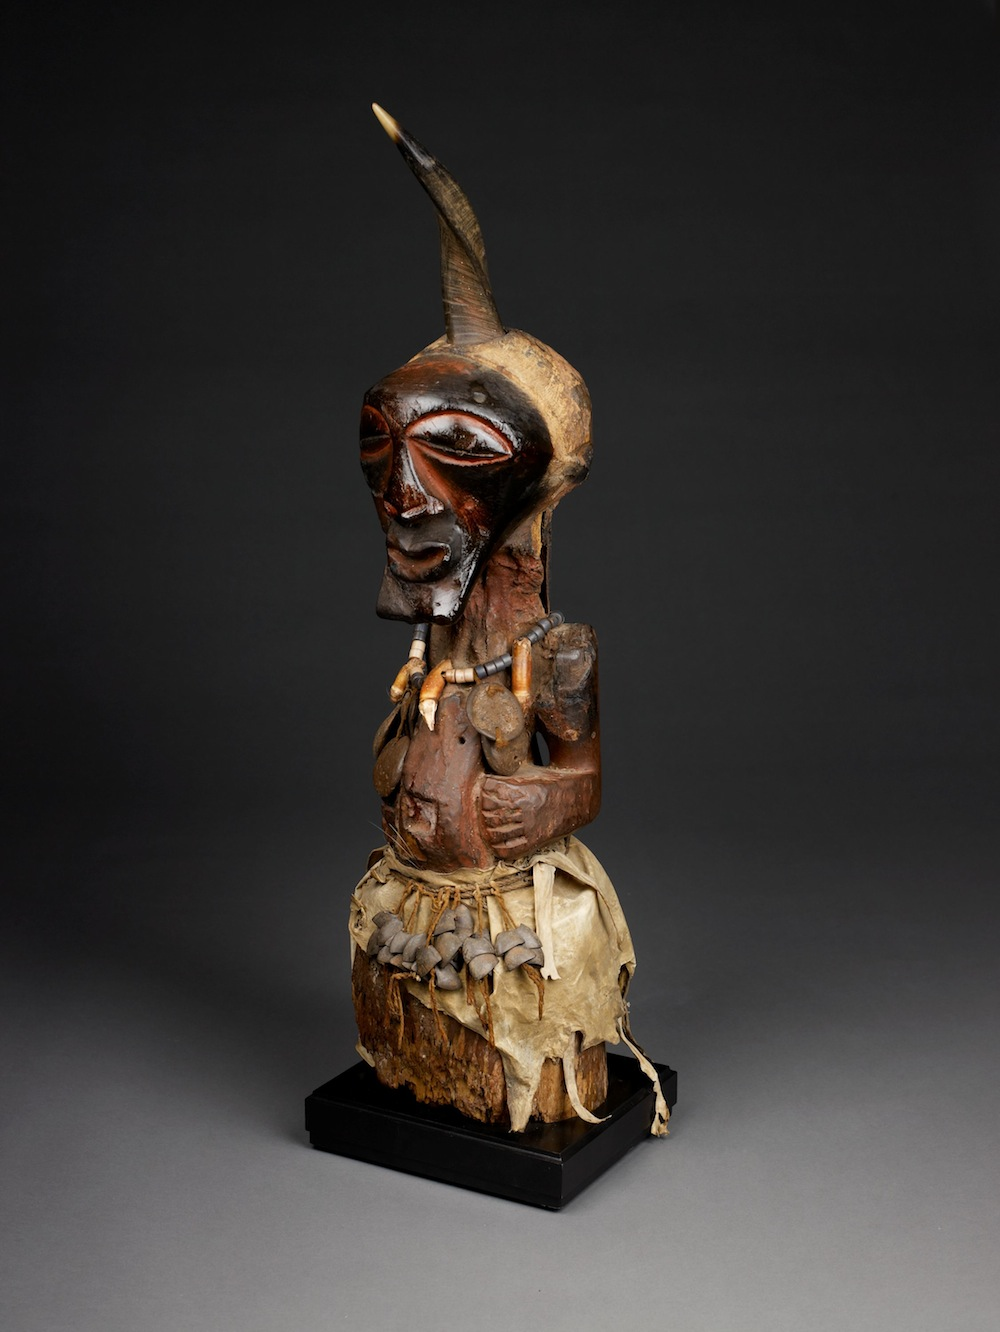 Power figure (nkishi), Early 20th century, Songye people, Democratic Republic of Congo. Wood, animal skin, animal teeth, seed pods, horn, metal, fiber, glass beads. Museum purchase with funds provided by the Birmingham City Council through the Birmingham Arts Commission, and the Endowed Fund for Acquisitions. 1989.64 .